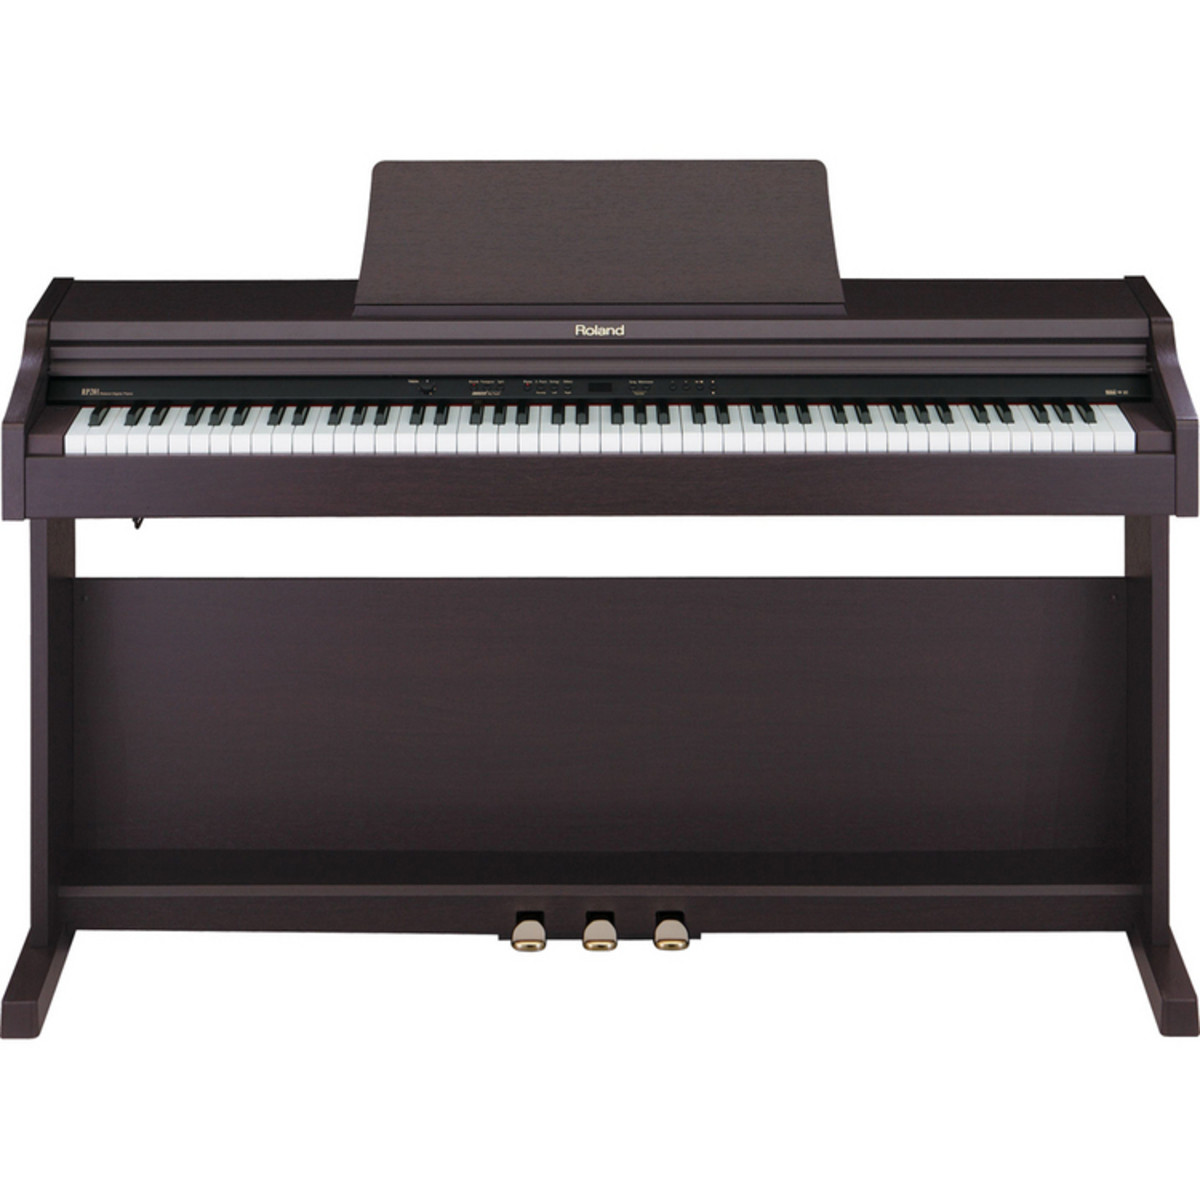 discontinued roland rp 201 digital piano rosewood at gear4music. Black Bedroom Furniture Sets. Home Design Ideas